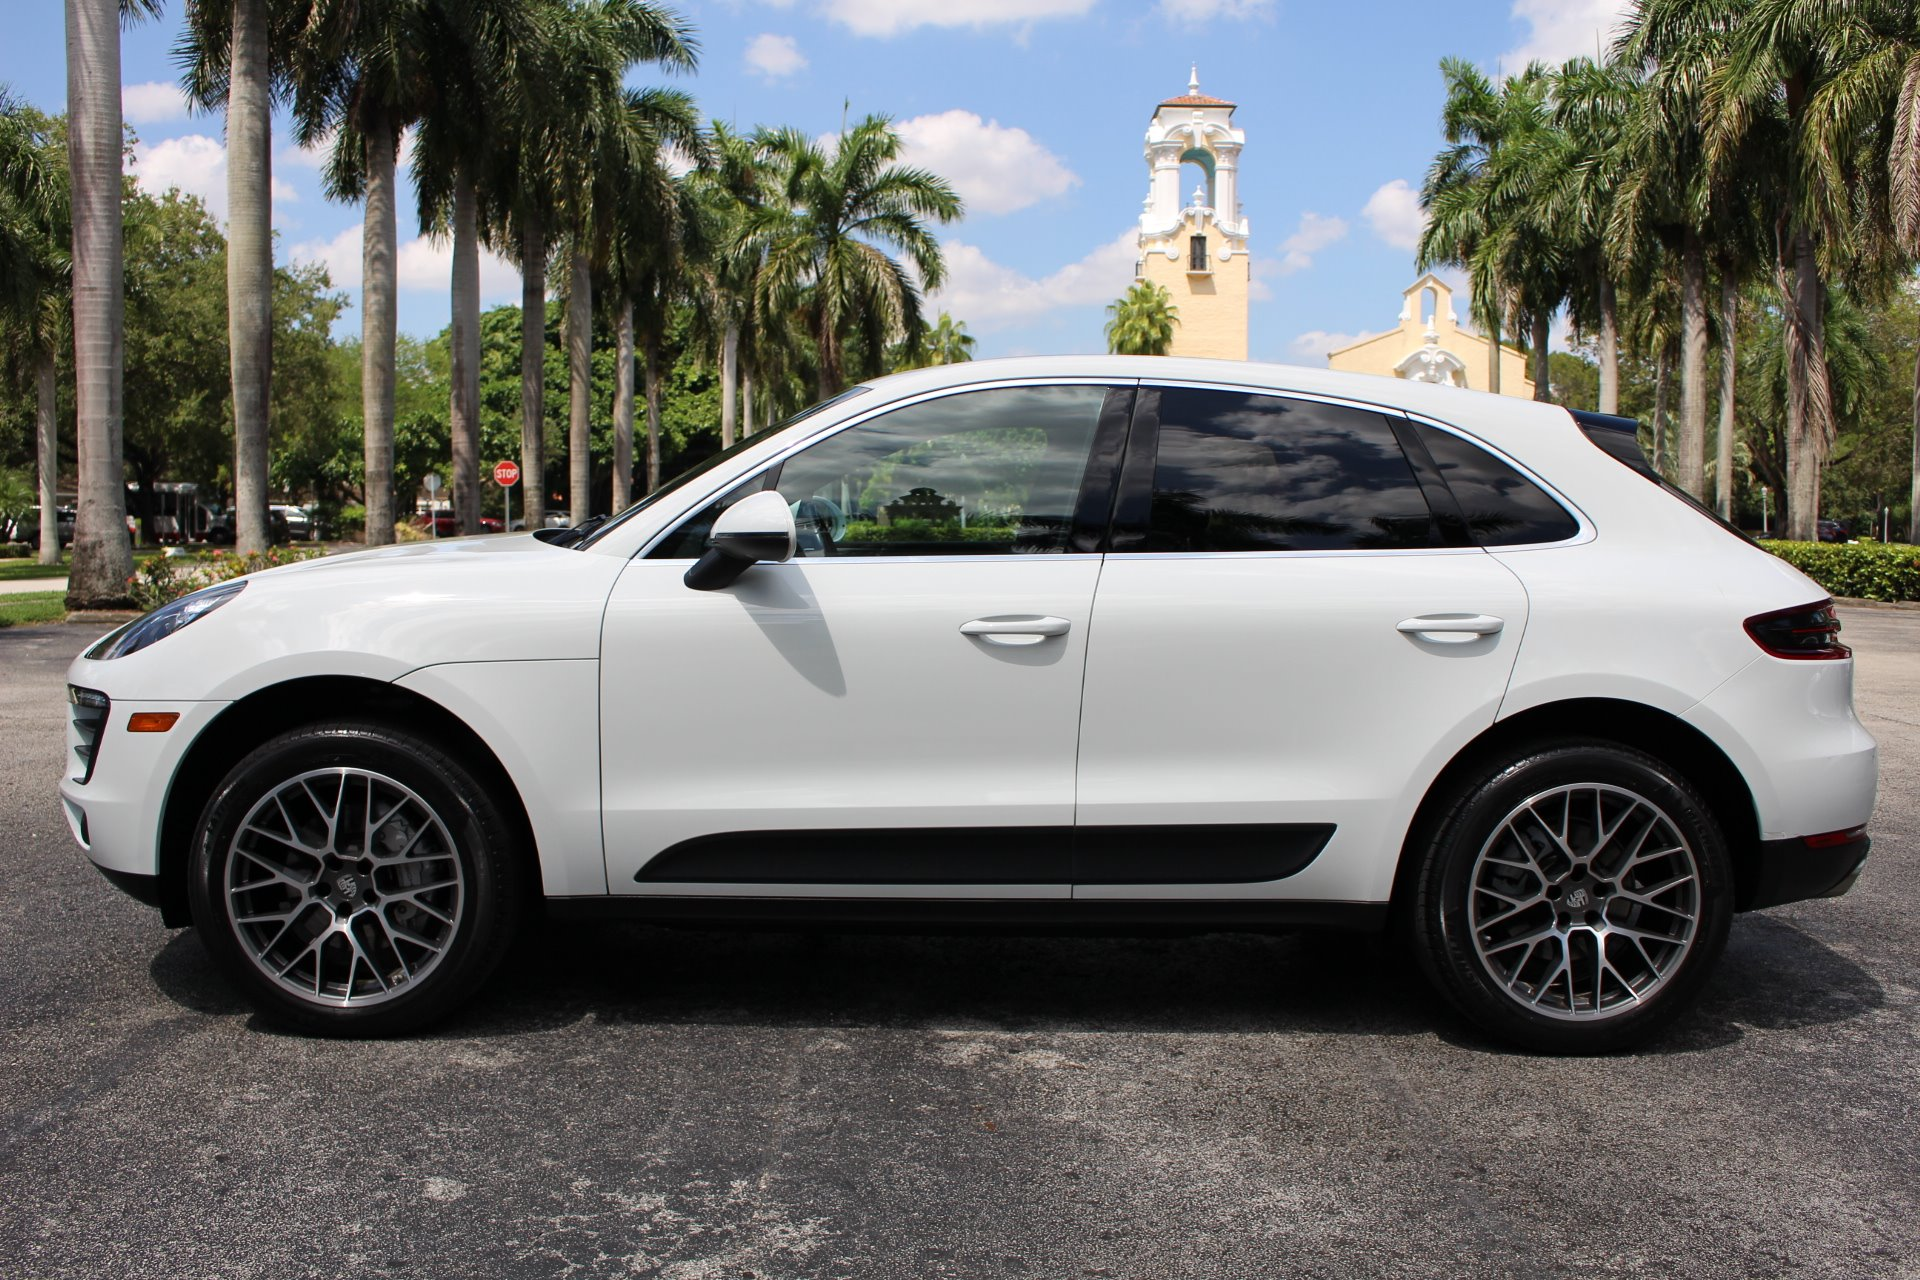 Used 2016 Porsche Macan S for sale $38,850 at The Gables Sports Cars in Miami FL 33146 2